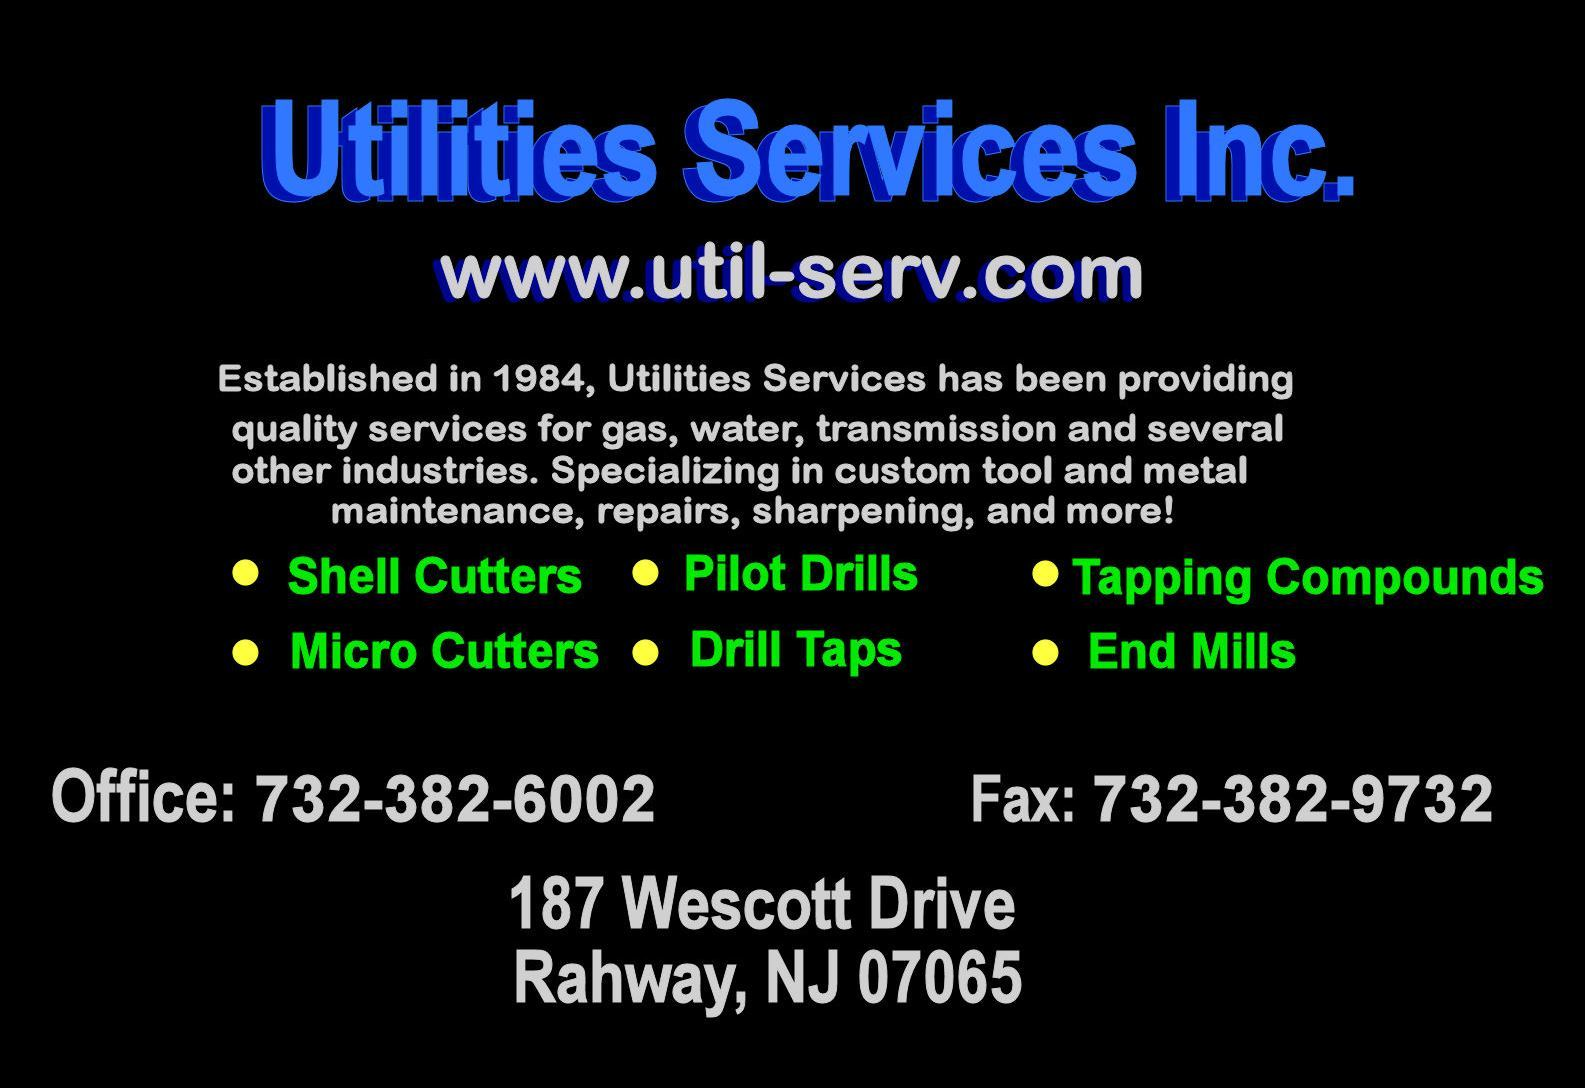 Utilities Services Inc.